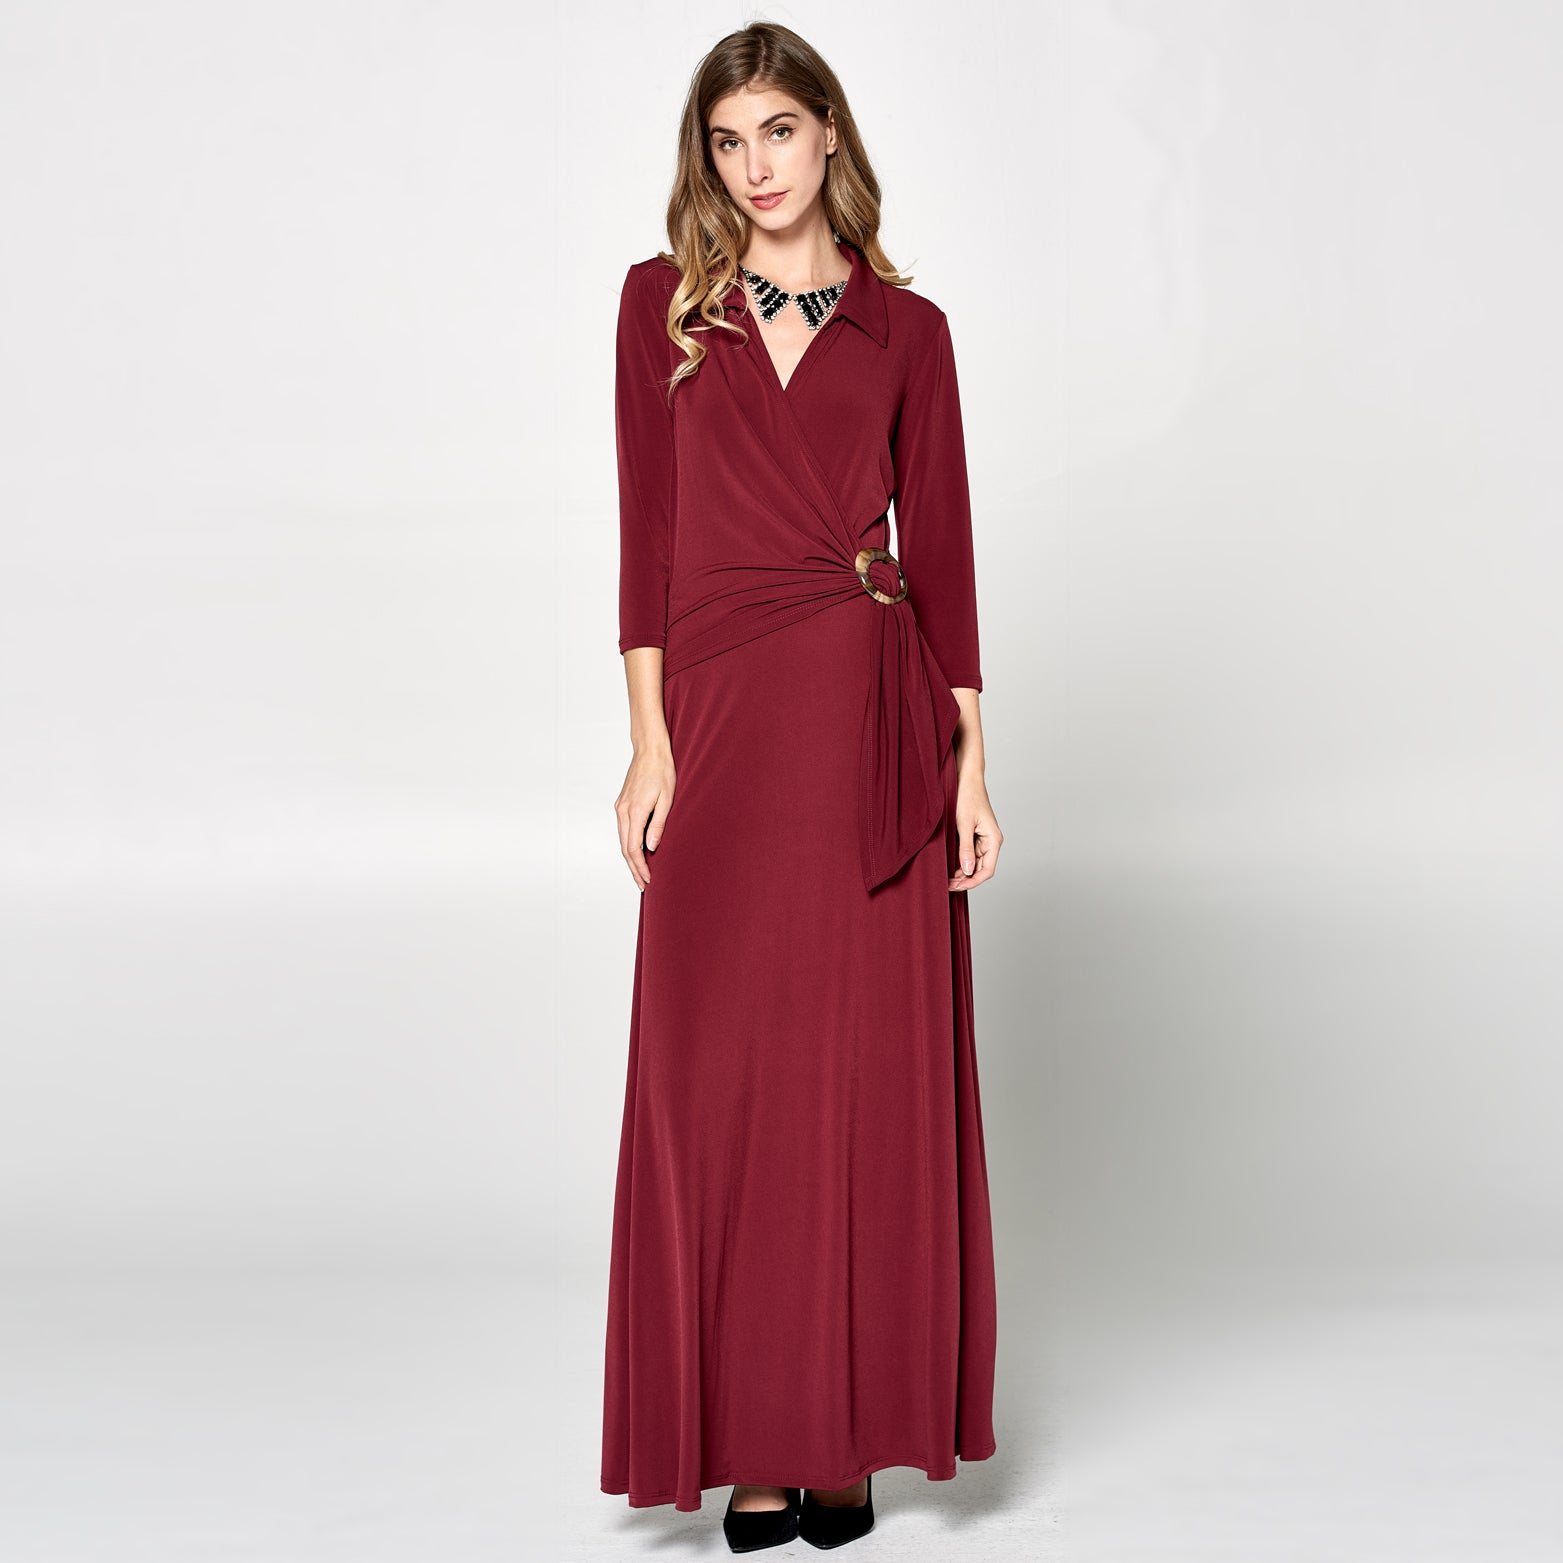 Solid Glam Venechia Wrap Dress - Love, Kuza